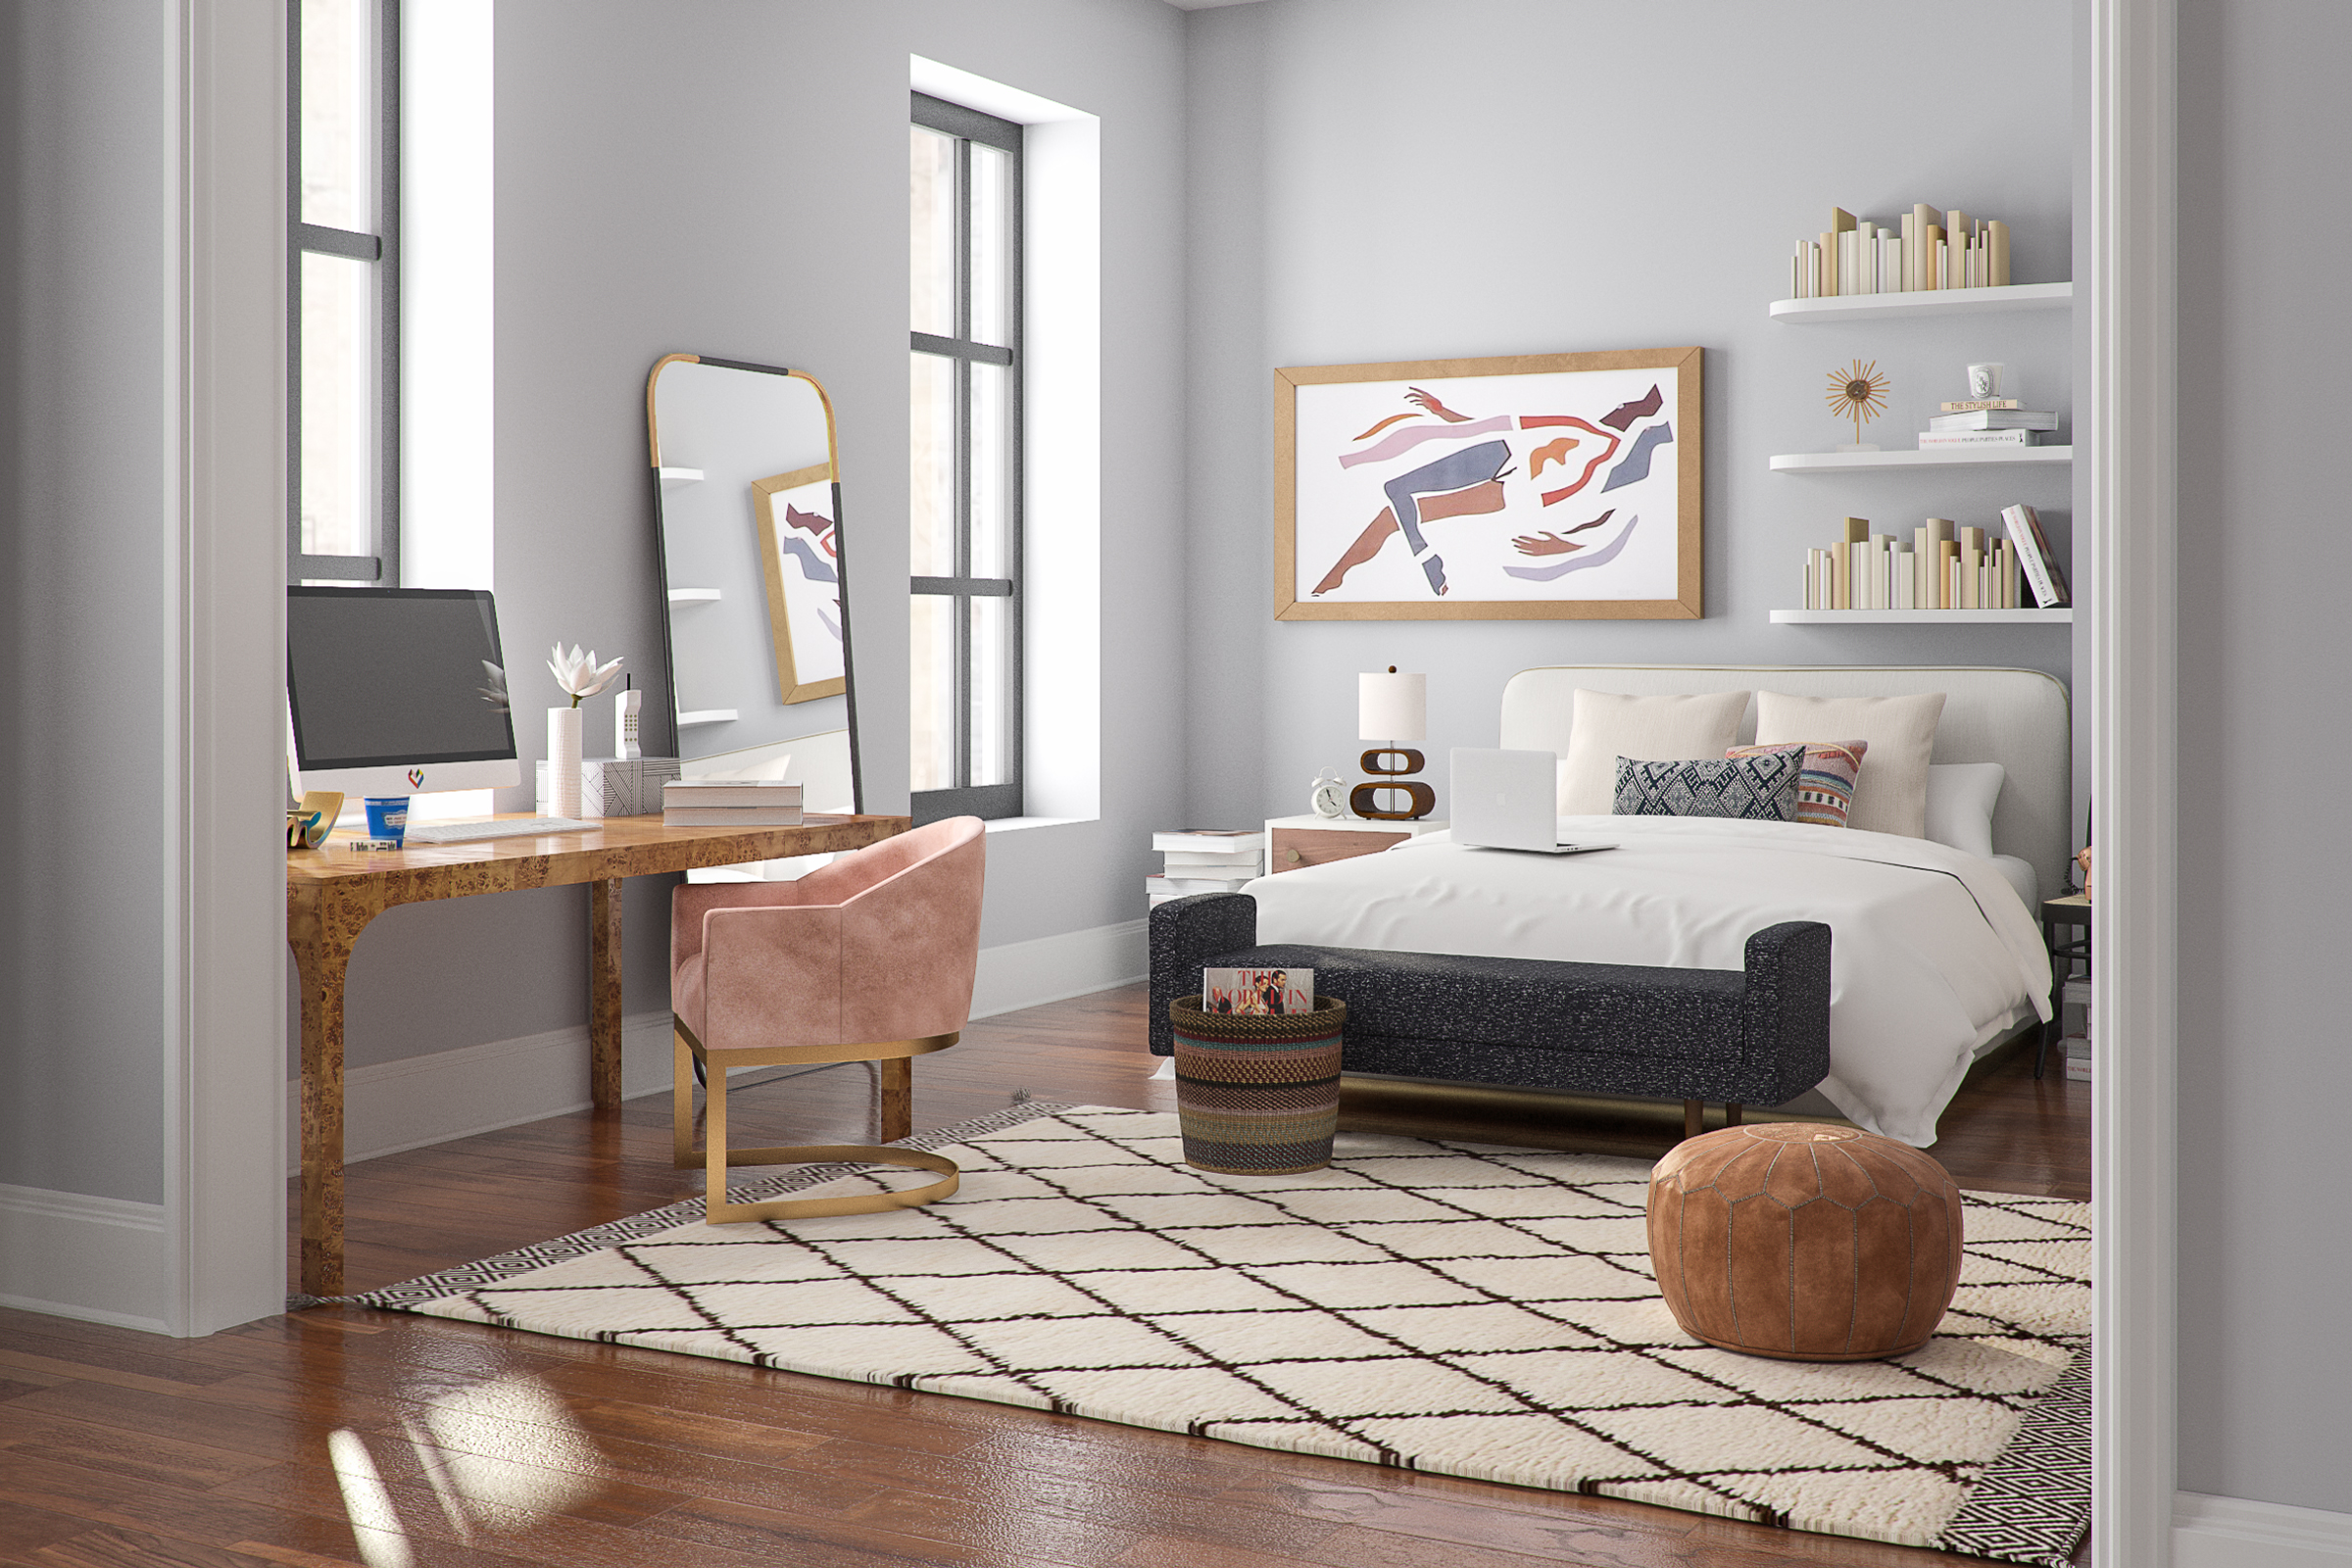 Rendering of a bedroom with a rug and artwork on the walls.